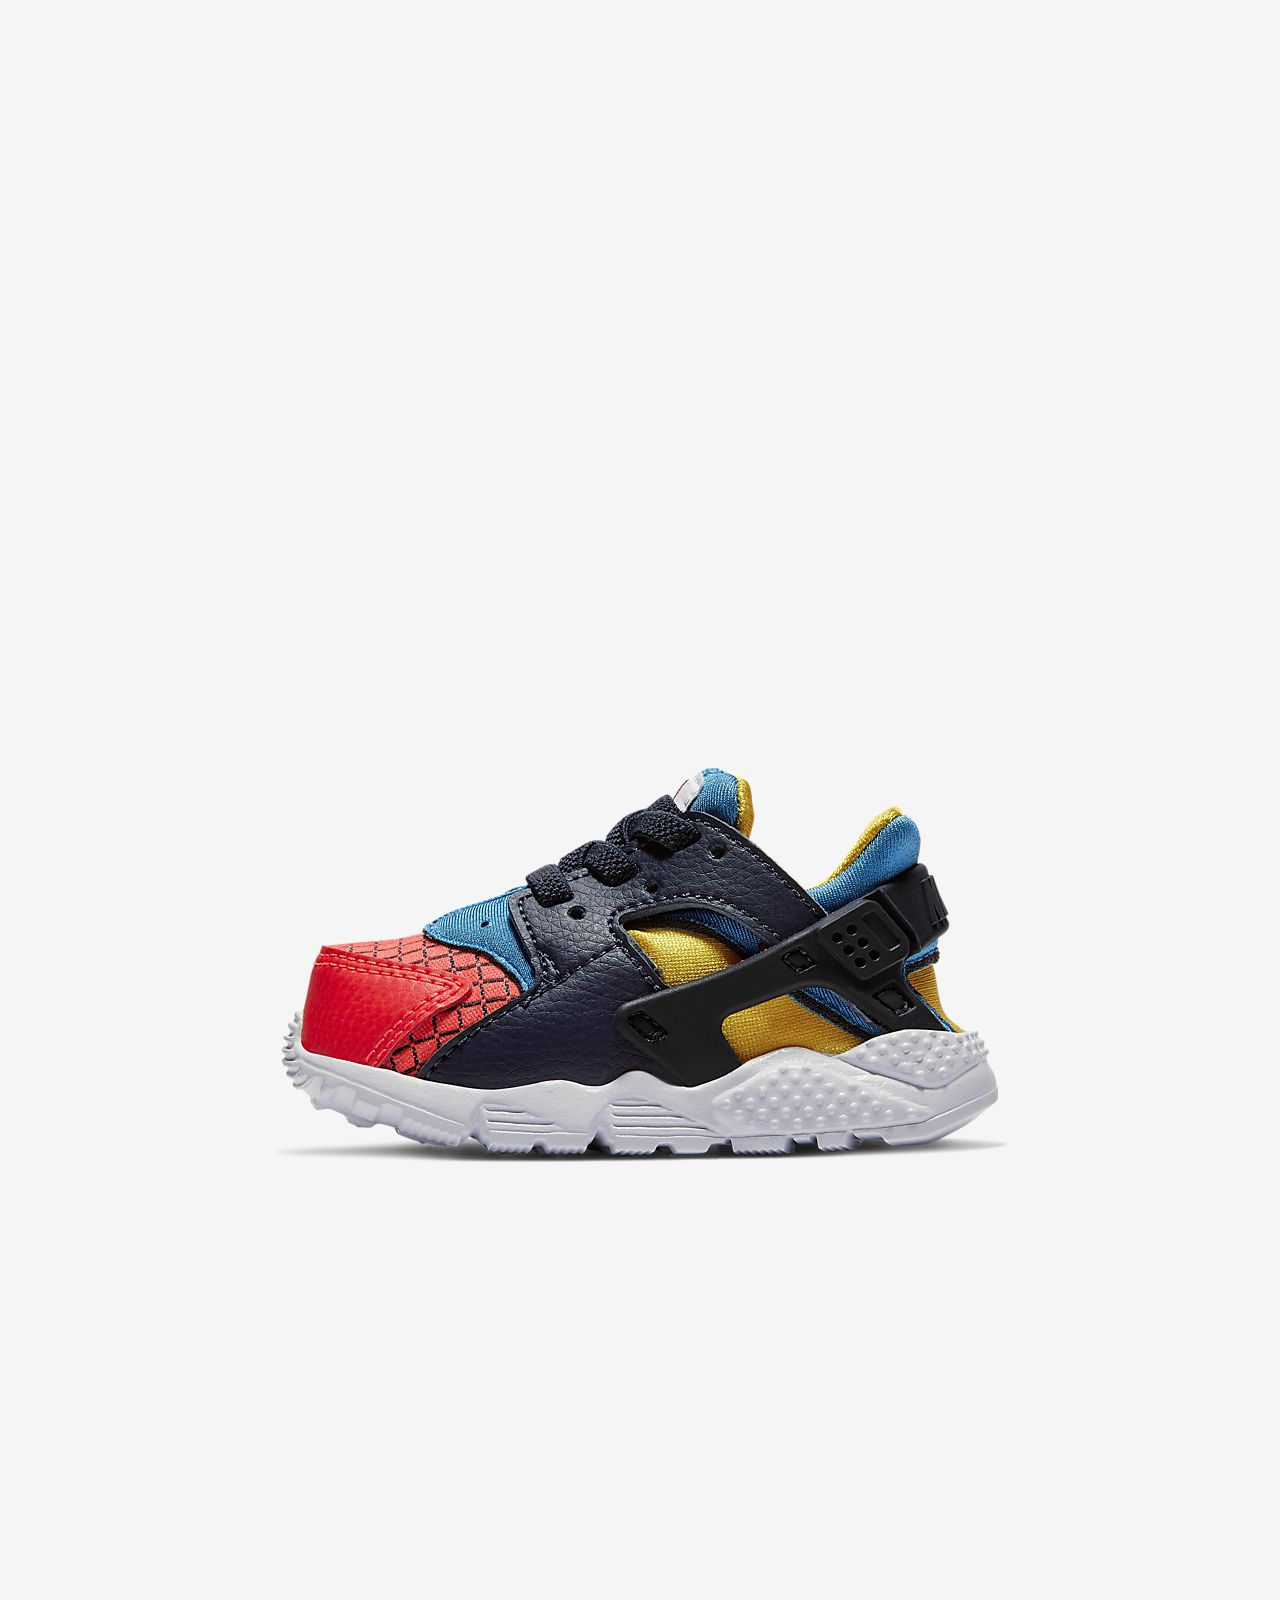 brand new 213ba 12849 Nike Huarache Run Ultra Now Infant/Toddler Shoe